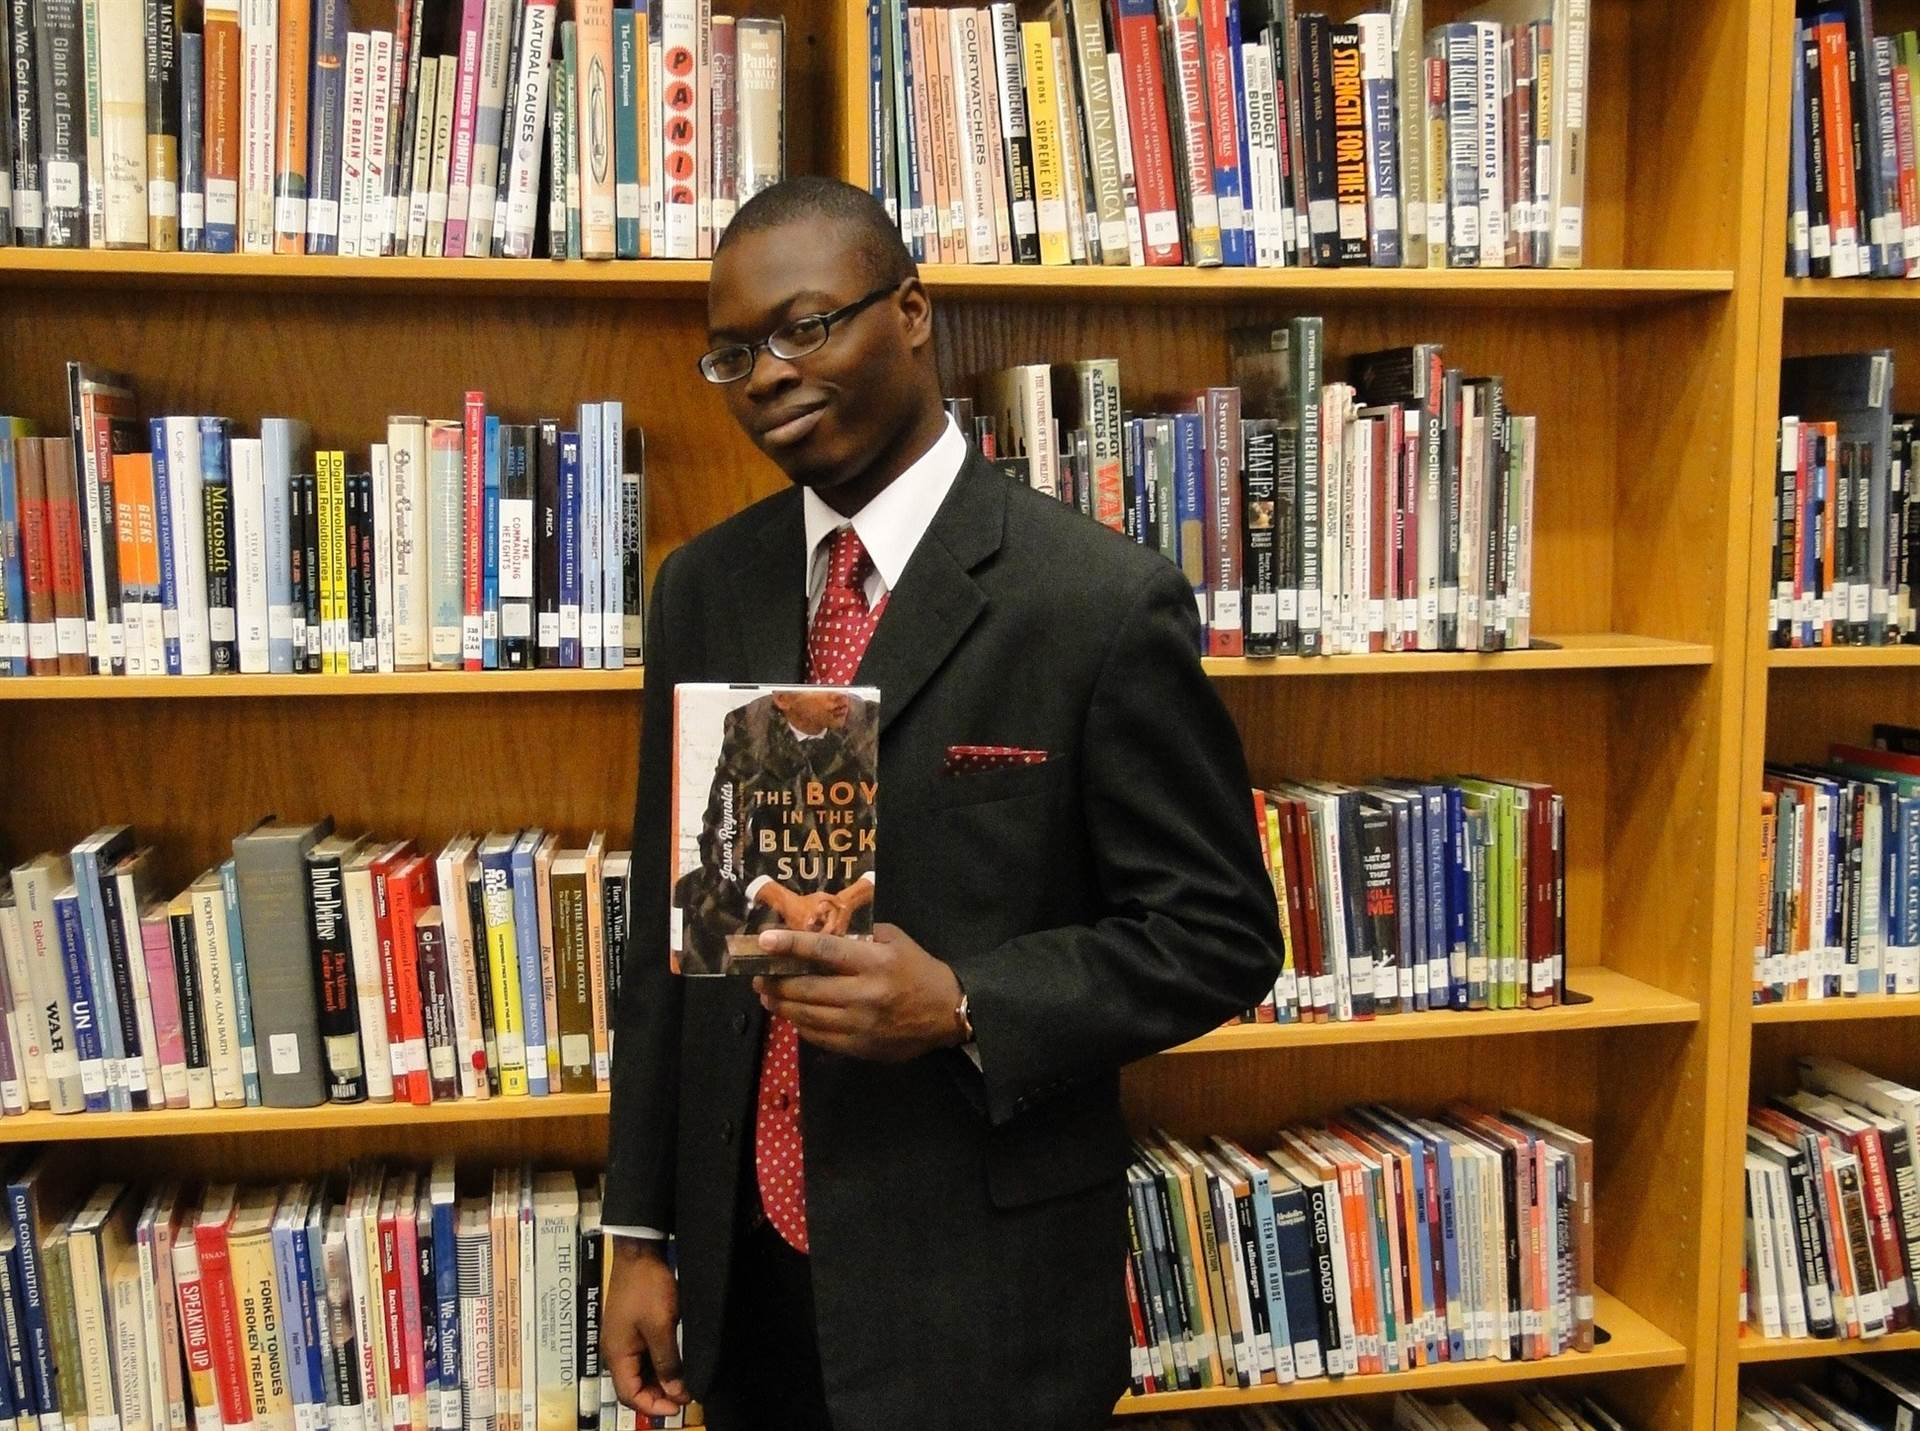 Darwin Scott with the book 'The Boy in the Black Suit.'